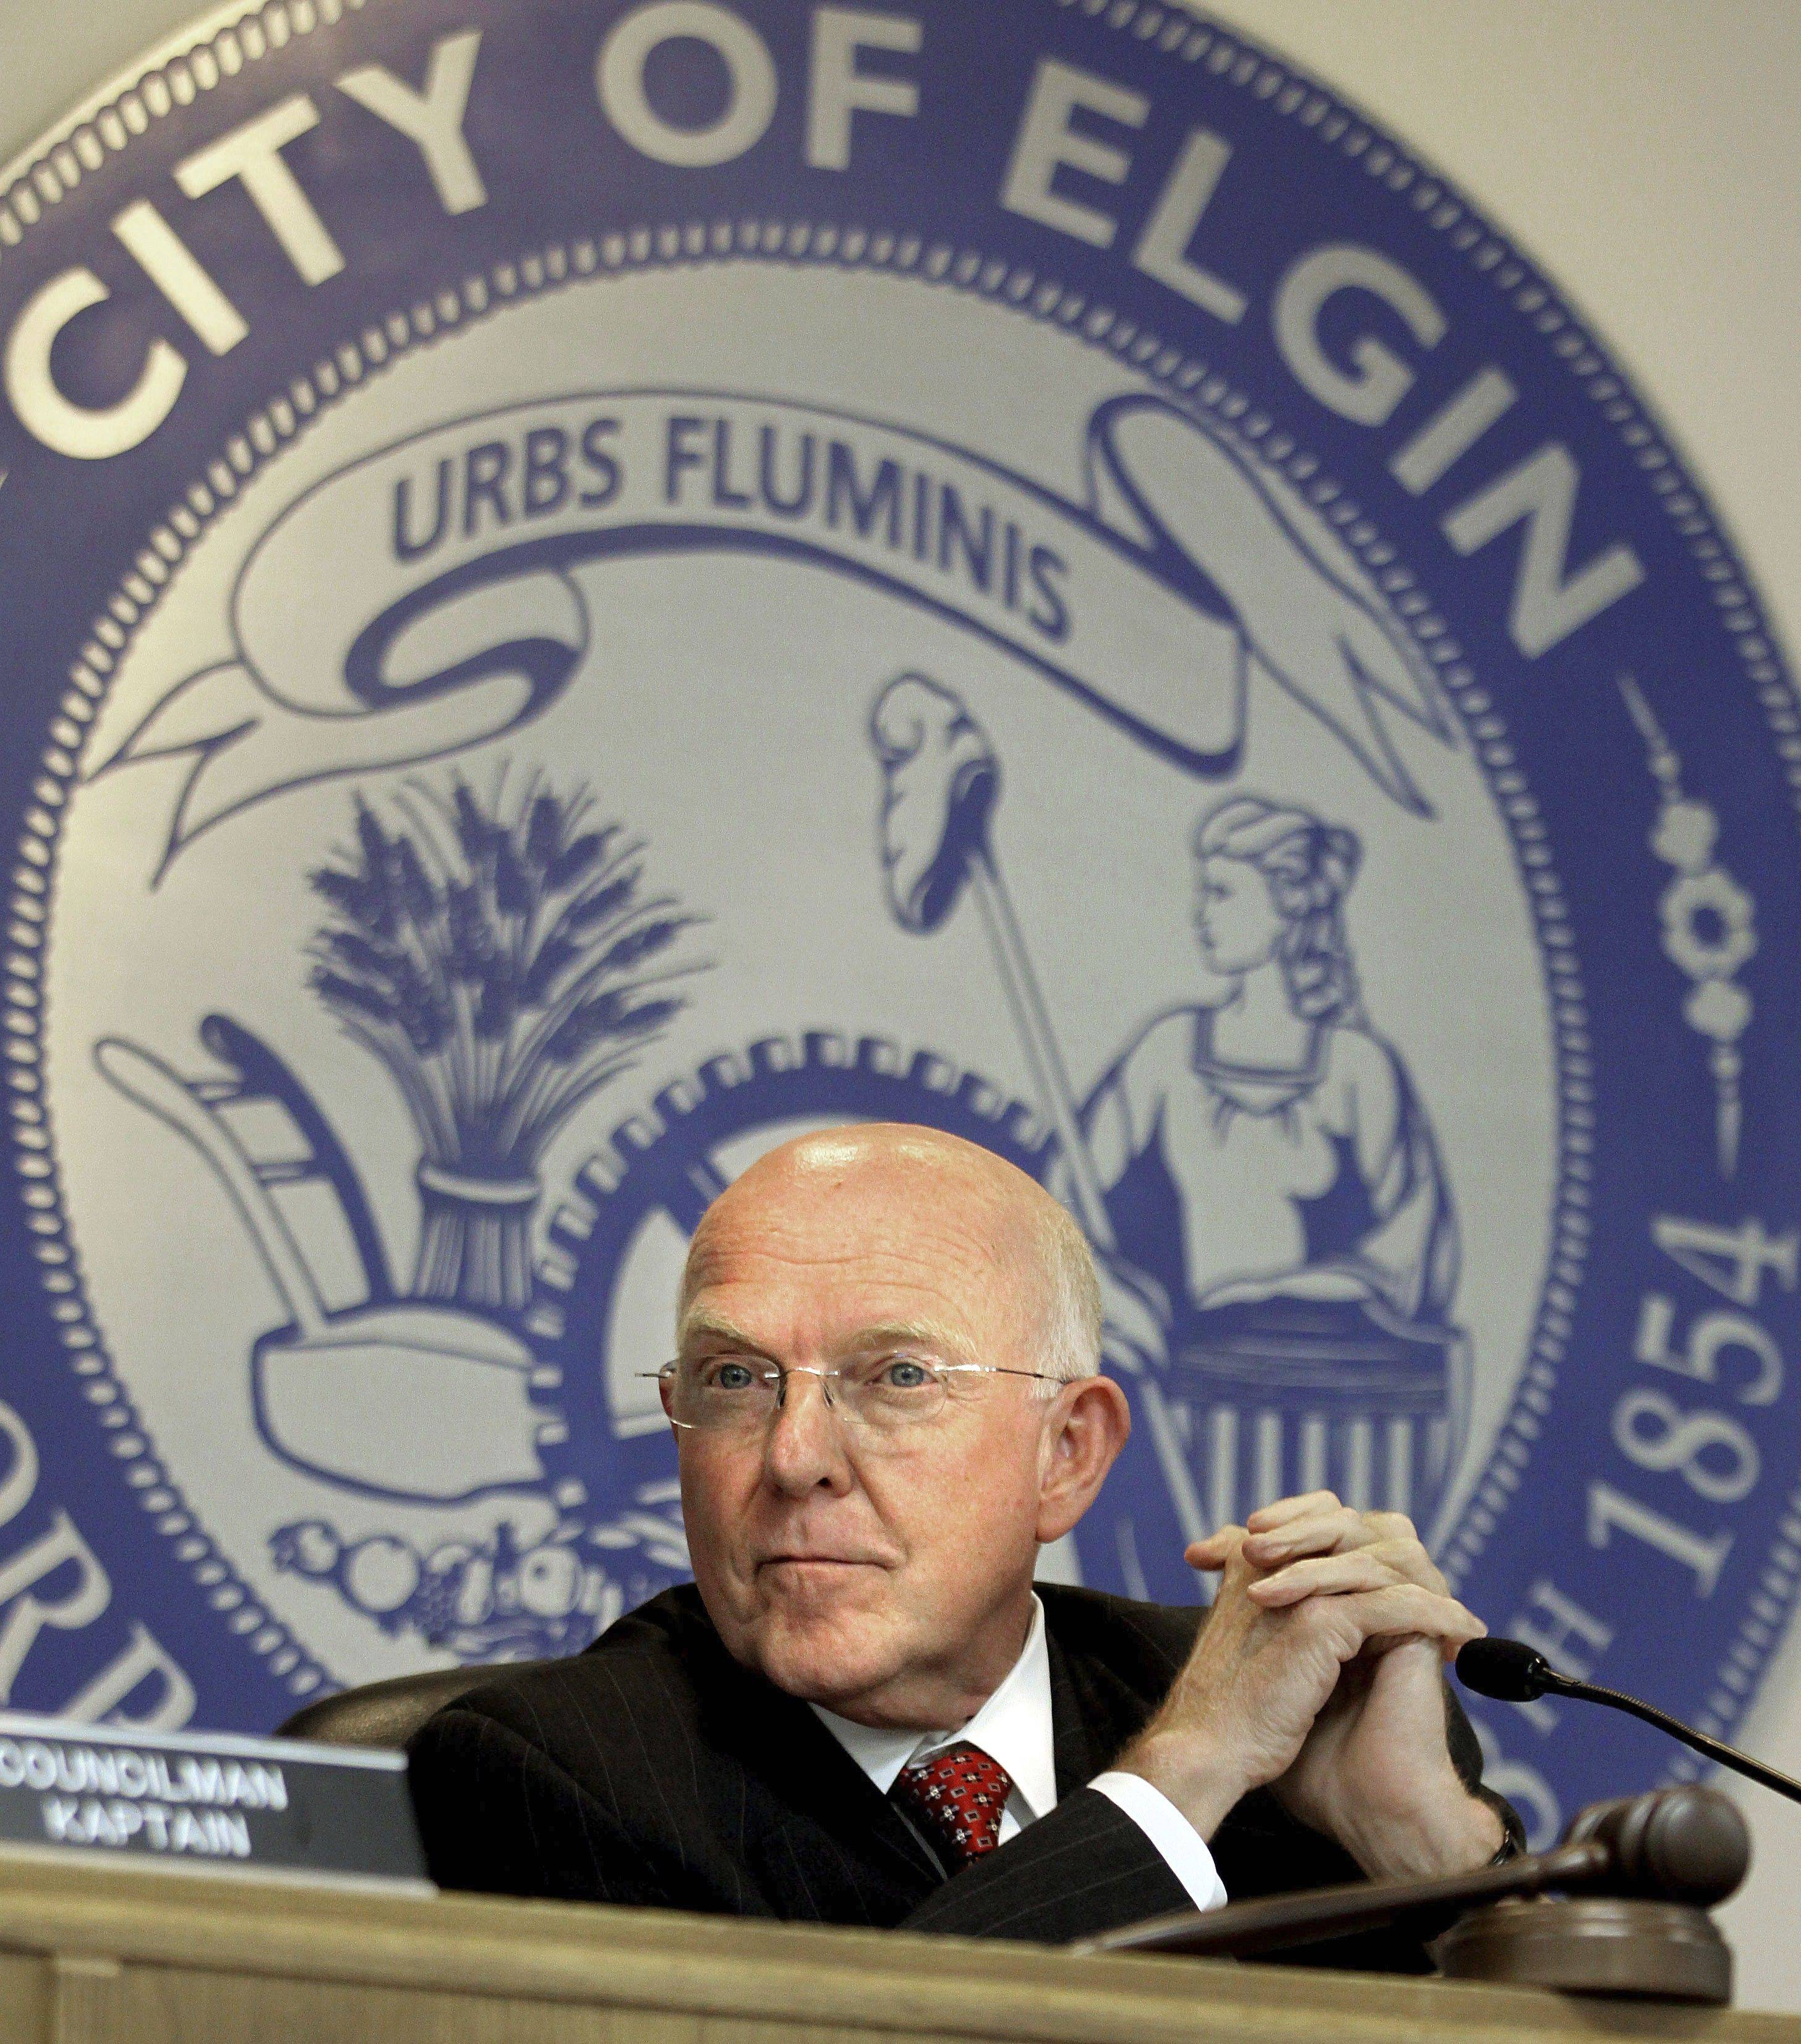 Elgin Mayor Ed Schock says his greatest accomplishment during his 12 years in office was changing the image of Elgin.